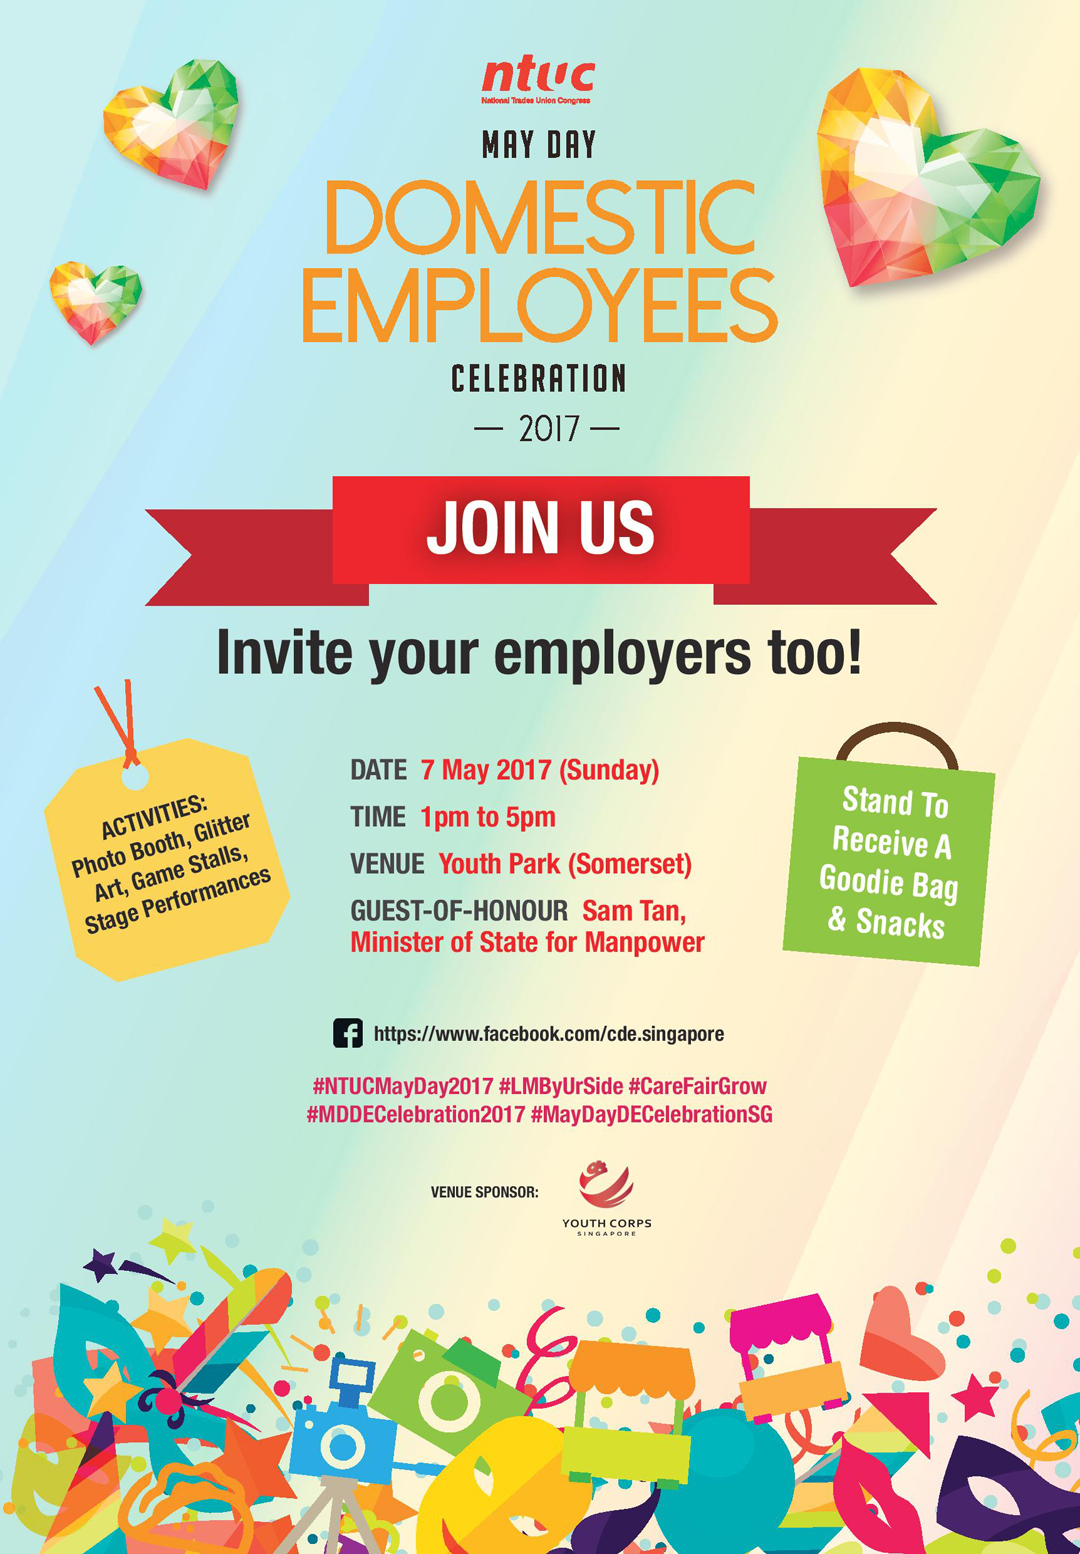 As We Approach The Month Of May Labour Movement Is Gearing Up With A Series Exciting Activities And Celebrations To Acknowledge Contributions